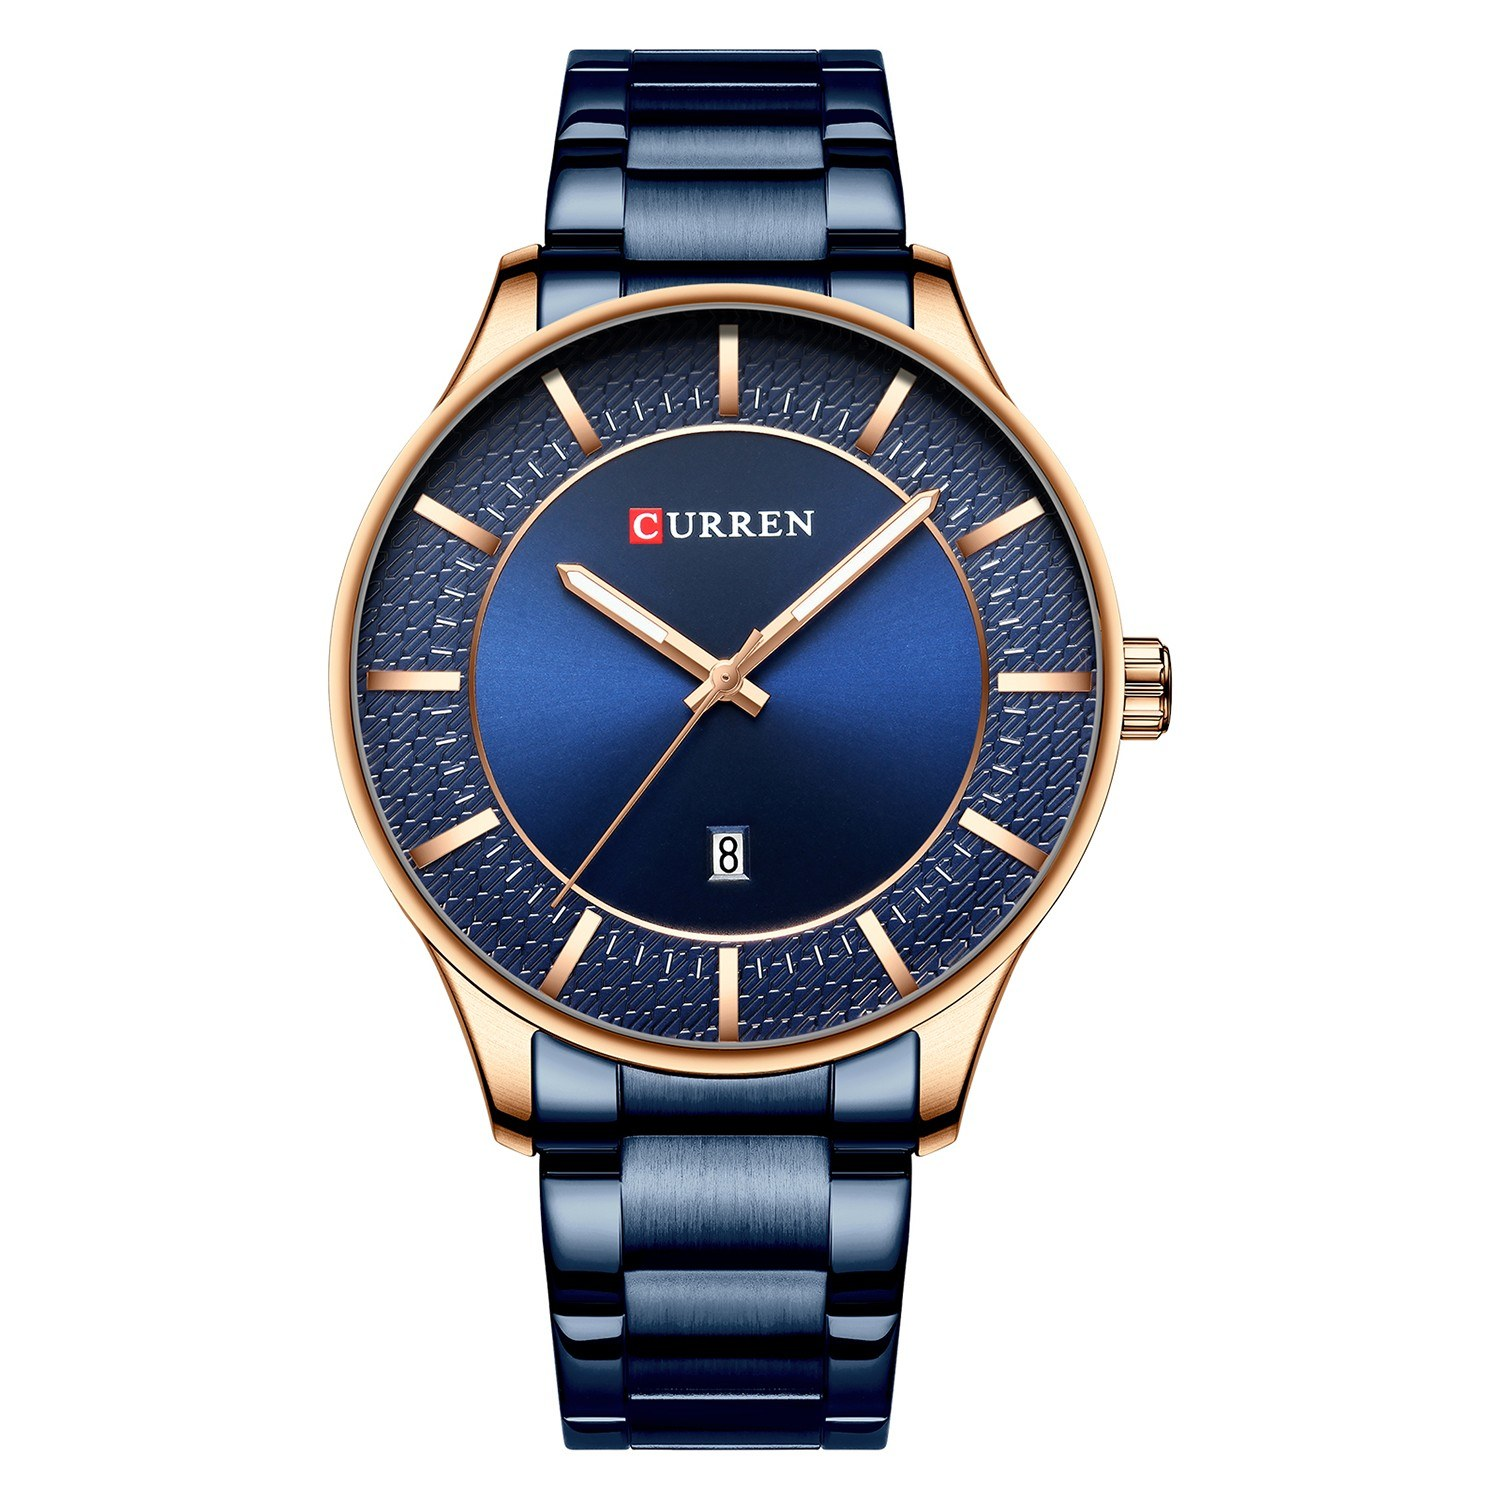 CURREN 8347 Men Wristwatch Wearable Accessories Quartz Watch for Male Watches with Date Waterproof Luminous Pointer Stainless Steel Strap Band